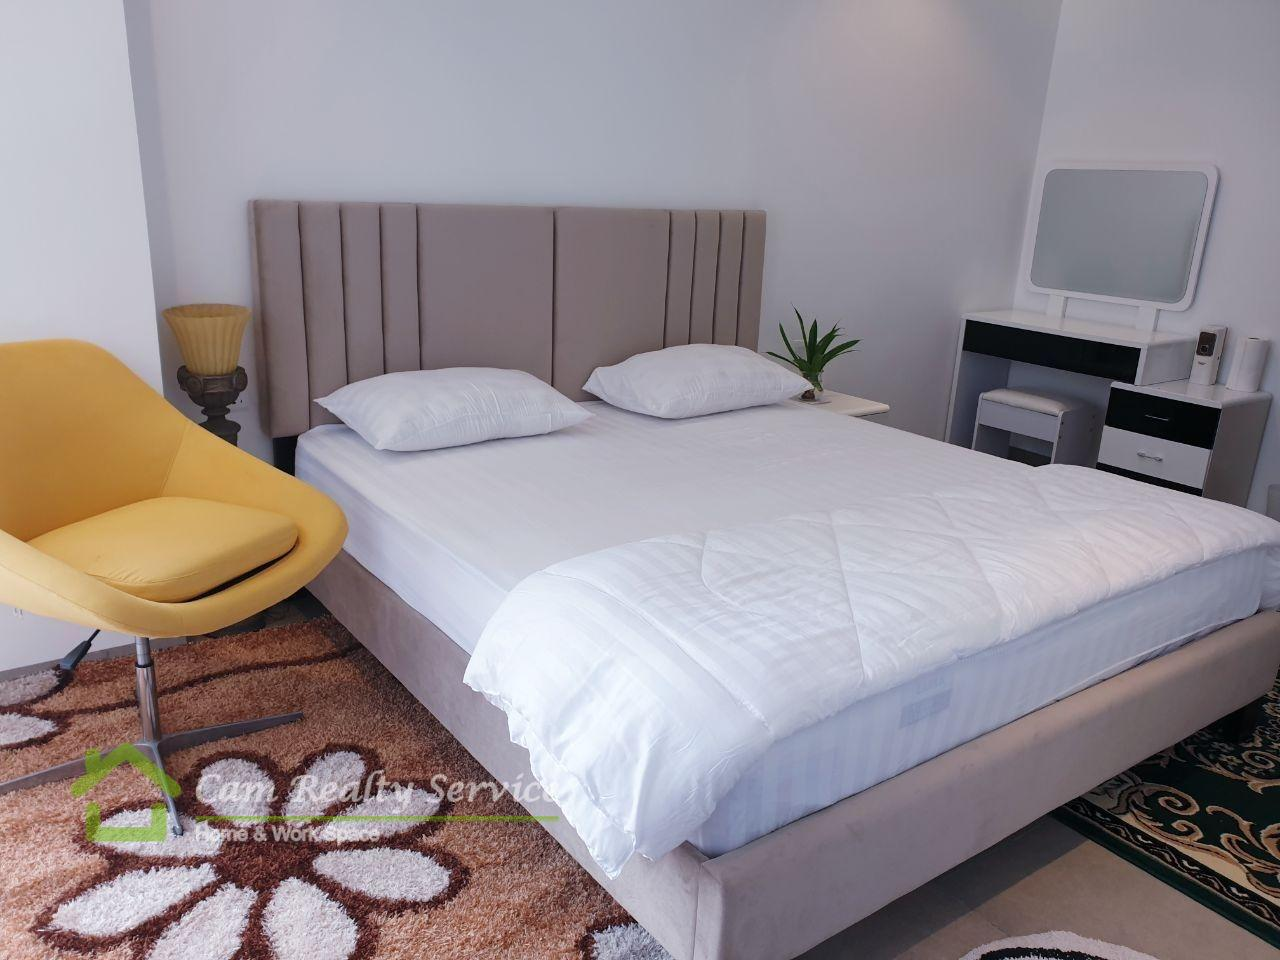 ISPP Area| Modern style 1 bedroom apartment available for rent 550$/month up| Pool & Gym